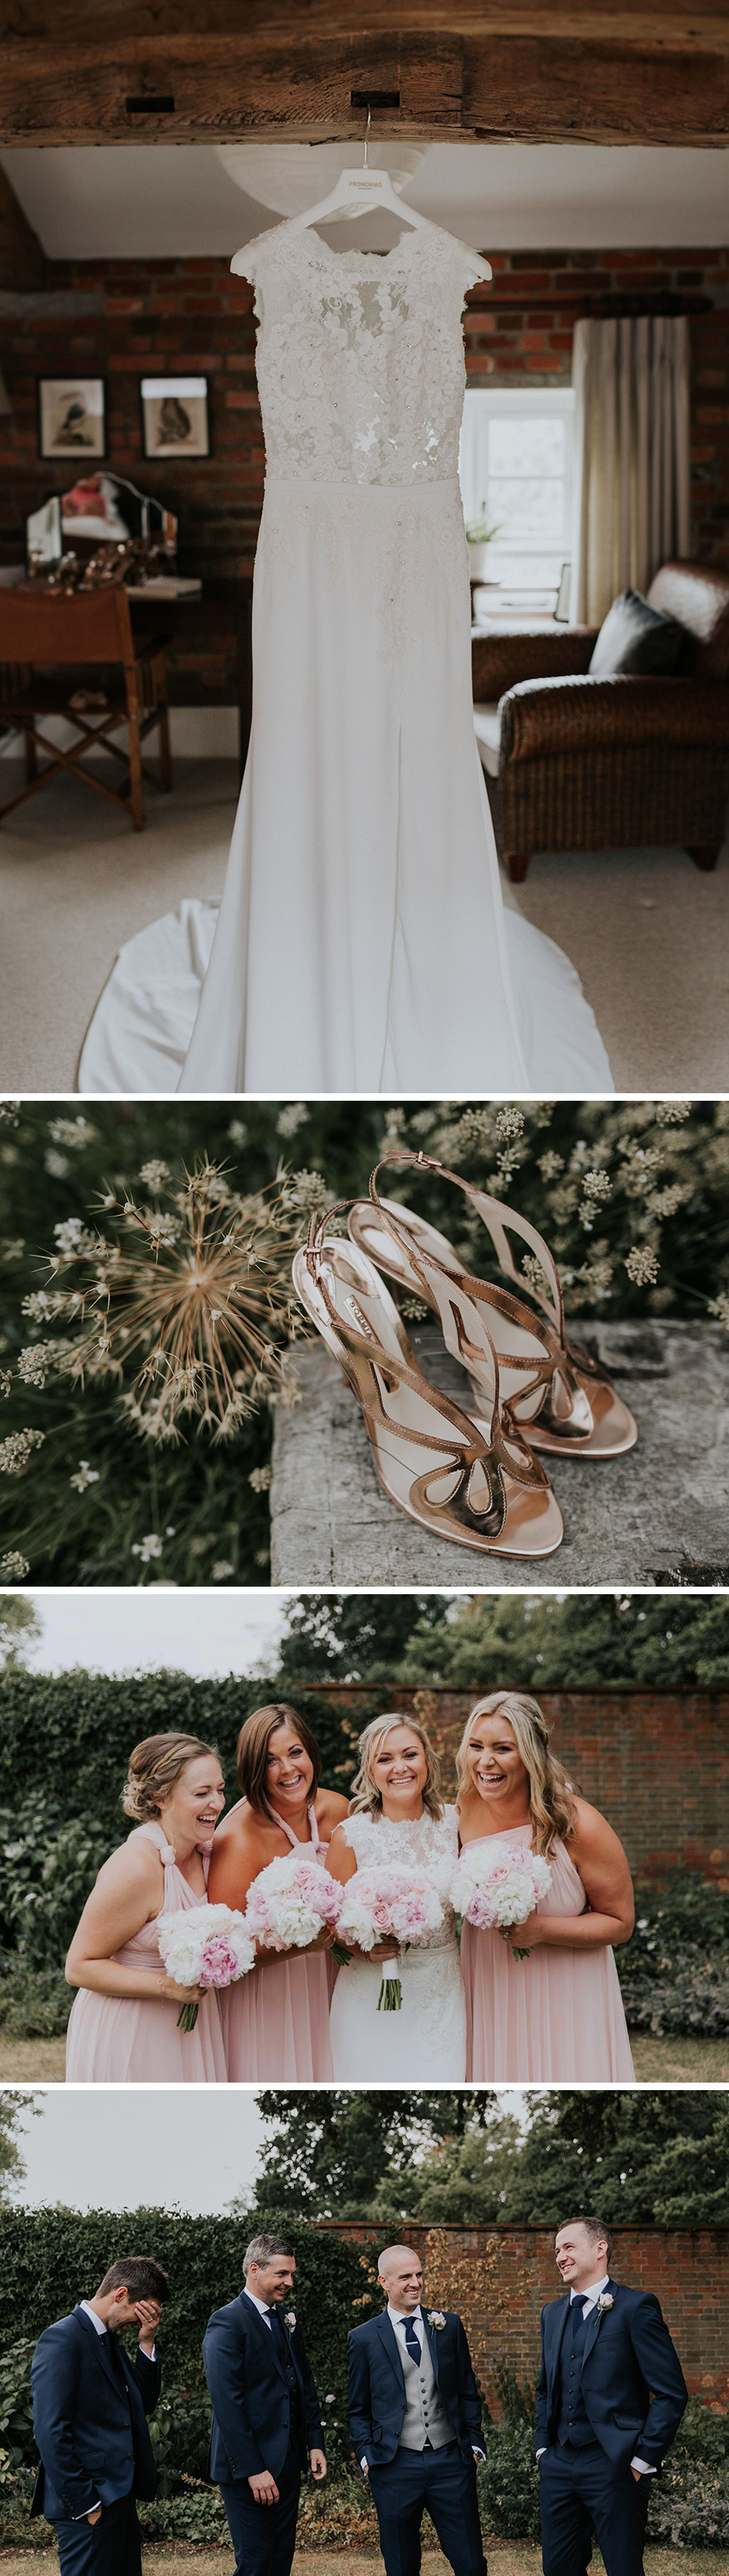 Real Wedding - Leanne and James's Contemporary Summer Wedding at Wasing Park | CHWV